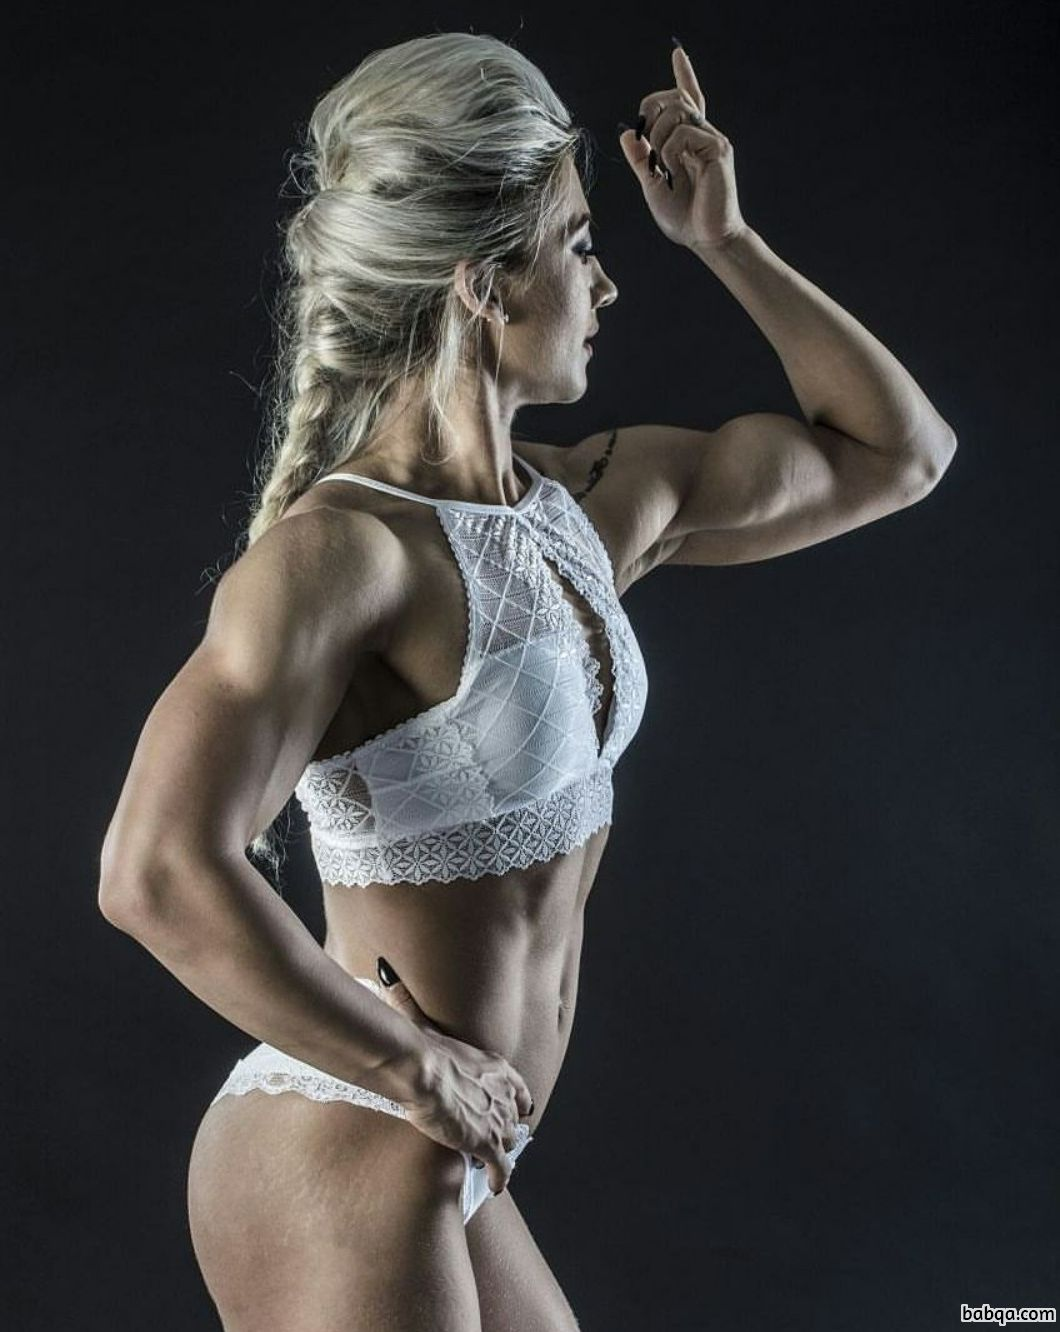 hottest female with fitness body and toned arms pic from instagram